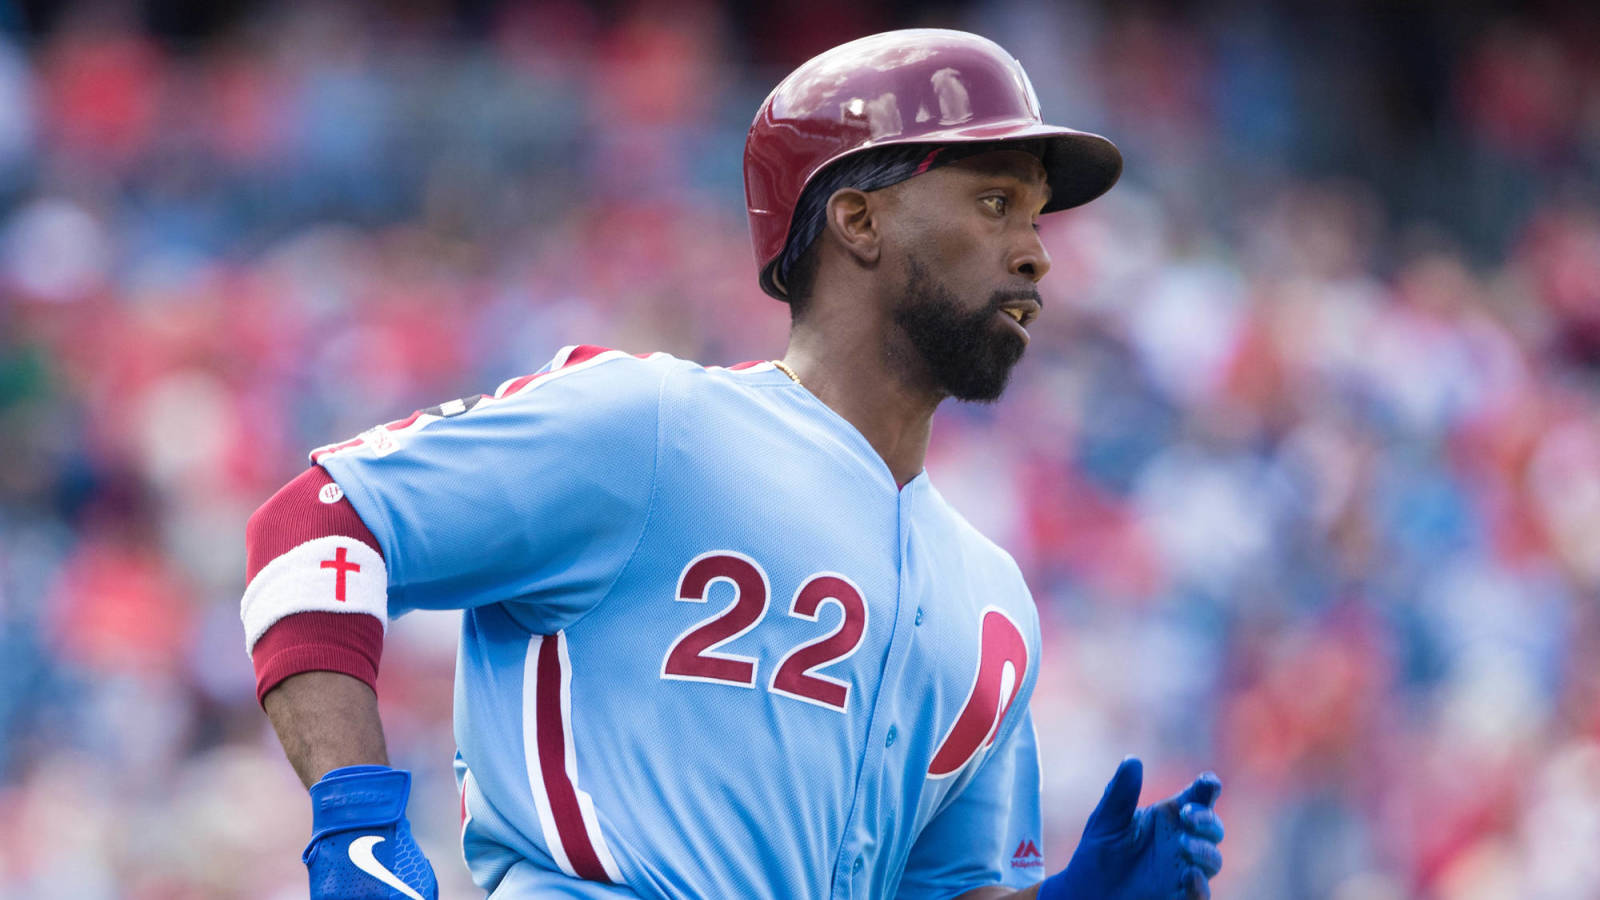 newest e8bb9 5572f Andrew McCutchen kills in Phillies' throwback jersey ...